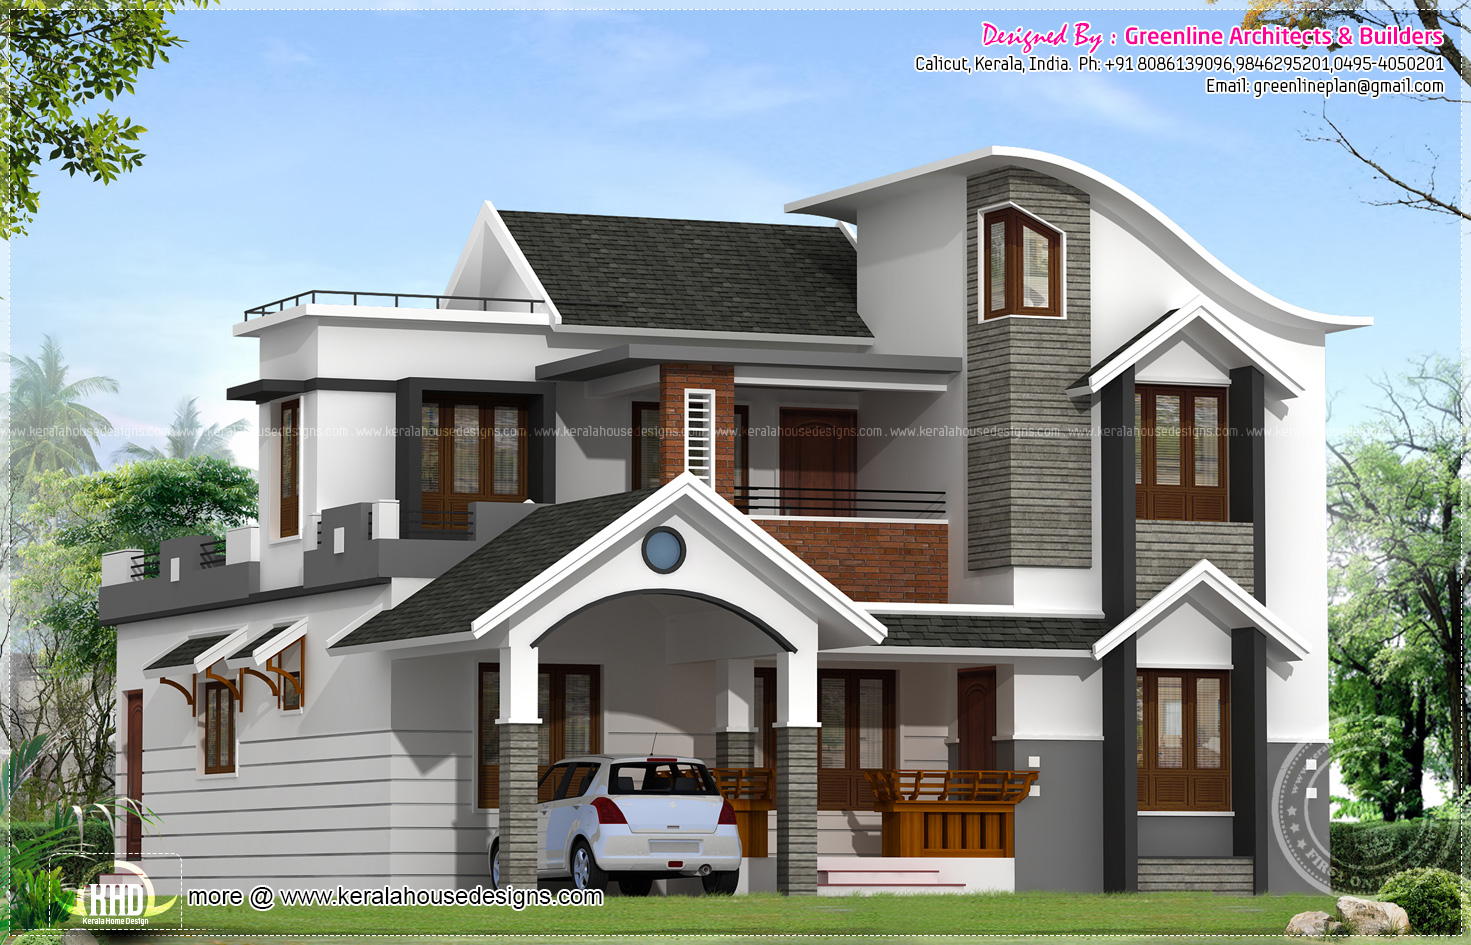 Modern house architecture in kerala kerala home design for Design architecture house